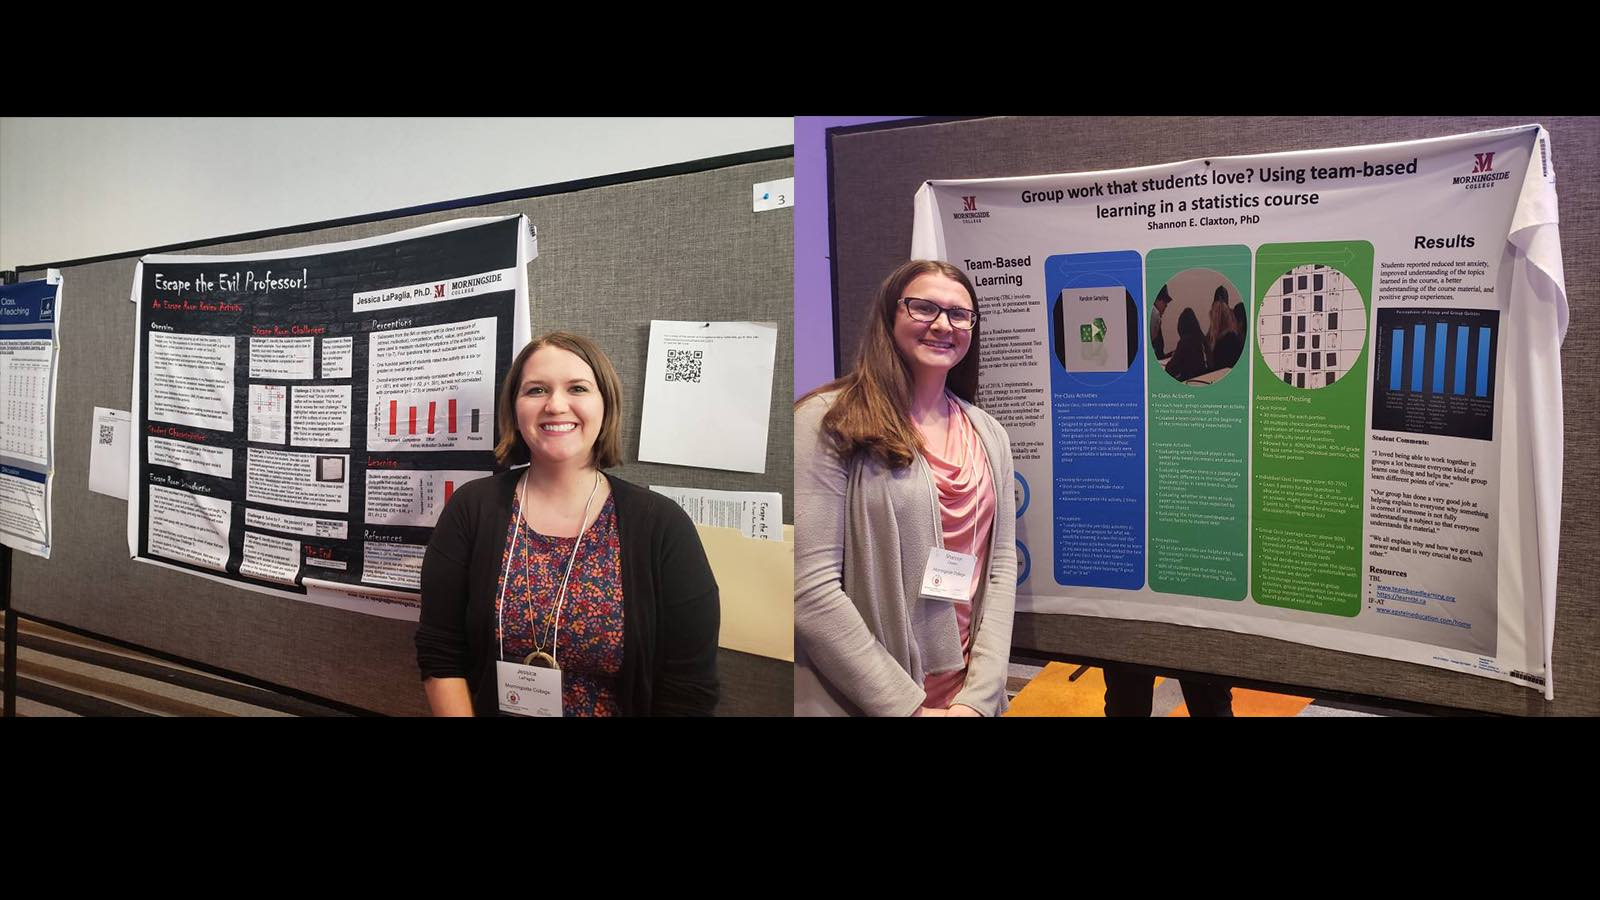 Claxton and LaPaglia at psychology conference